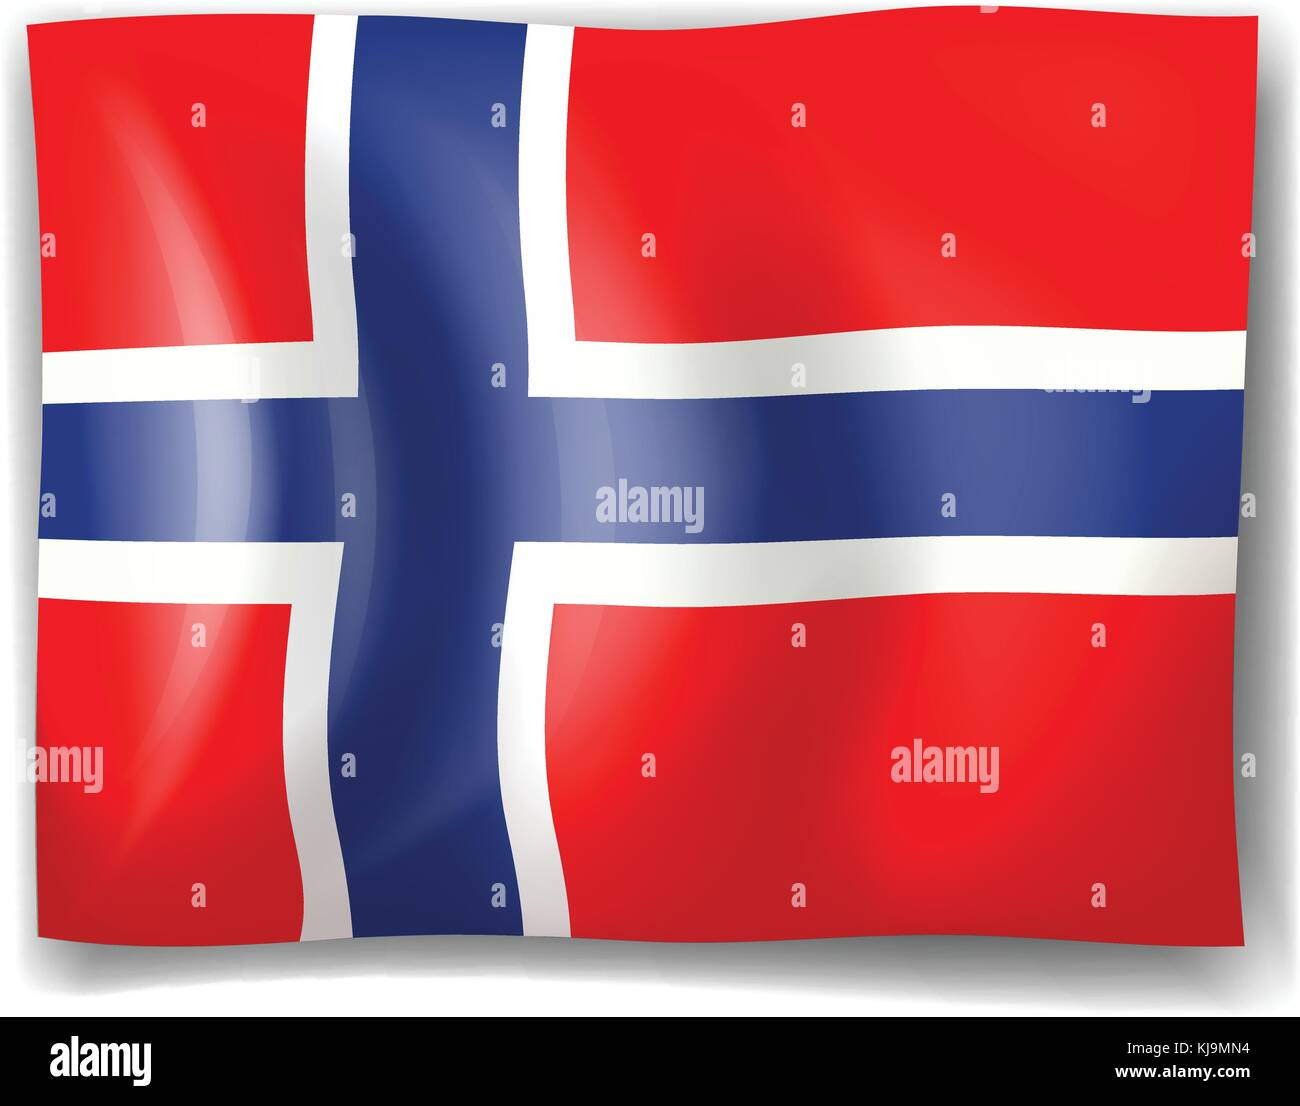 Illustration of the flag of Norway on a white background - Stock Image